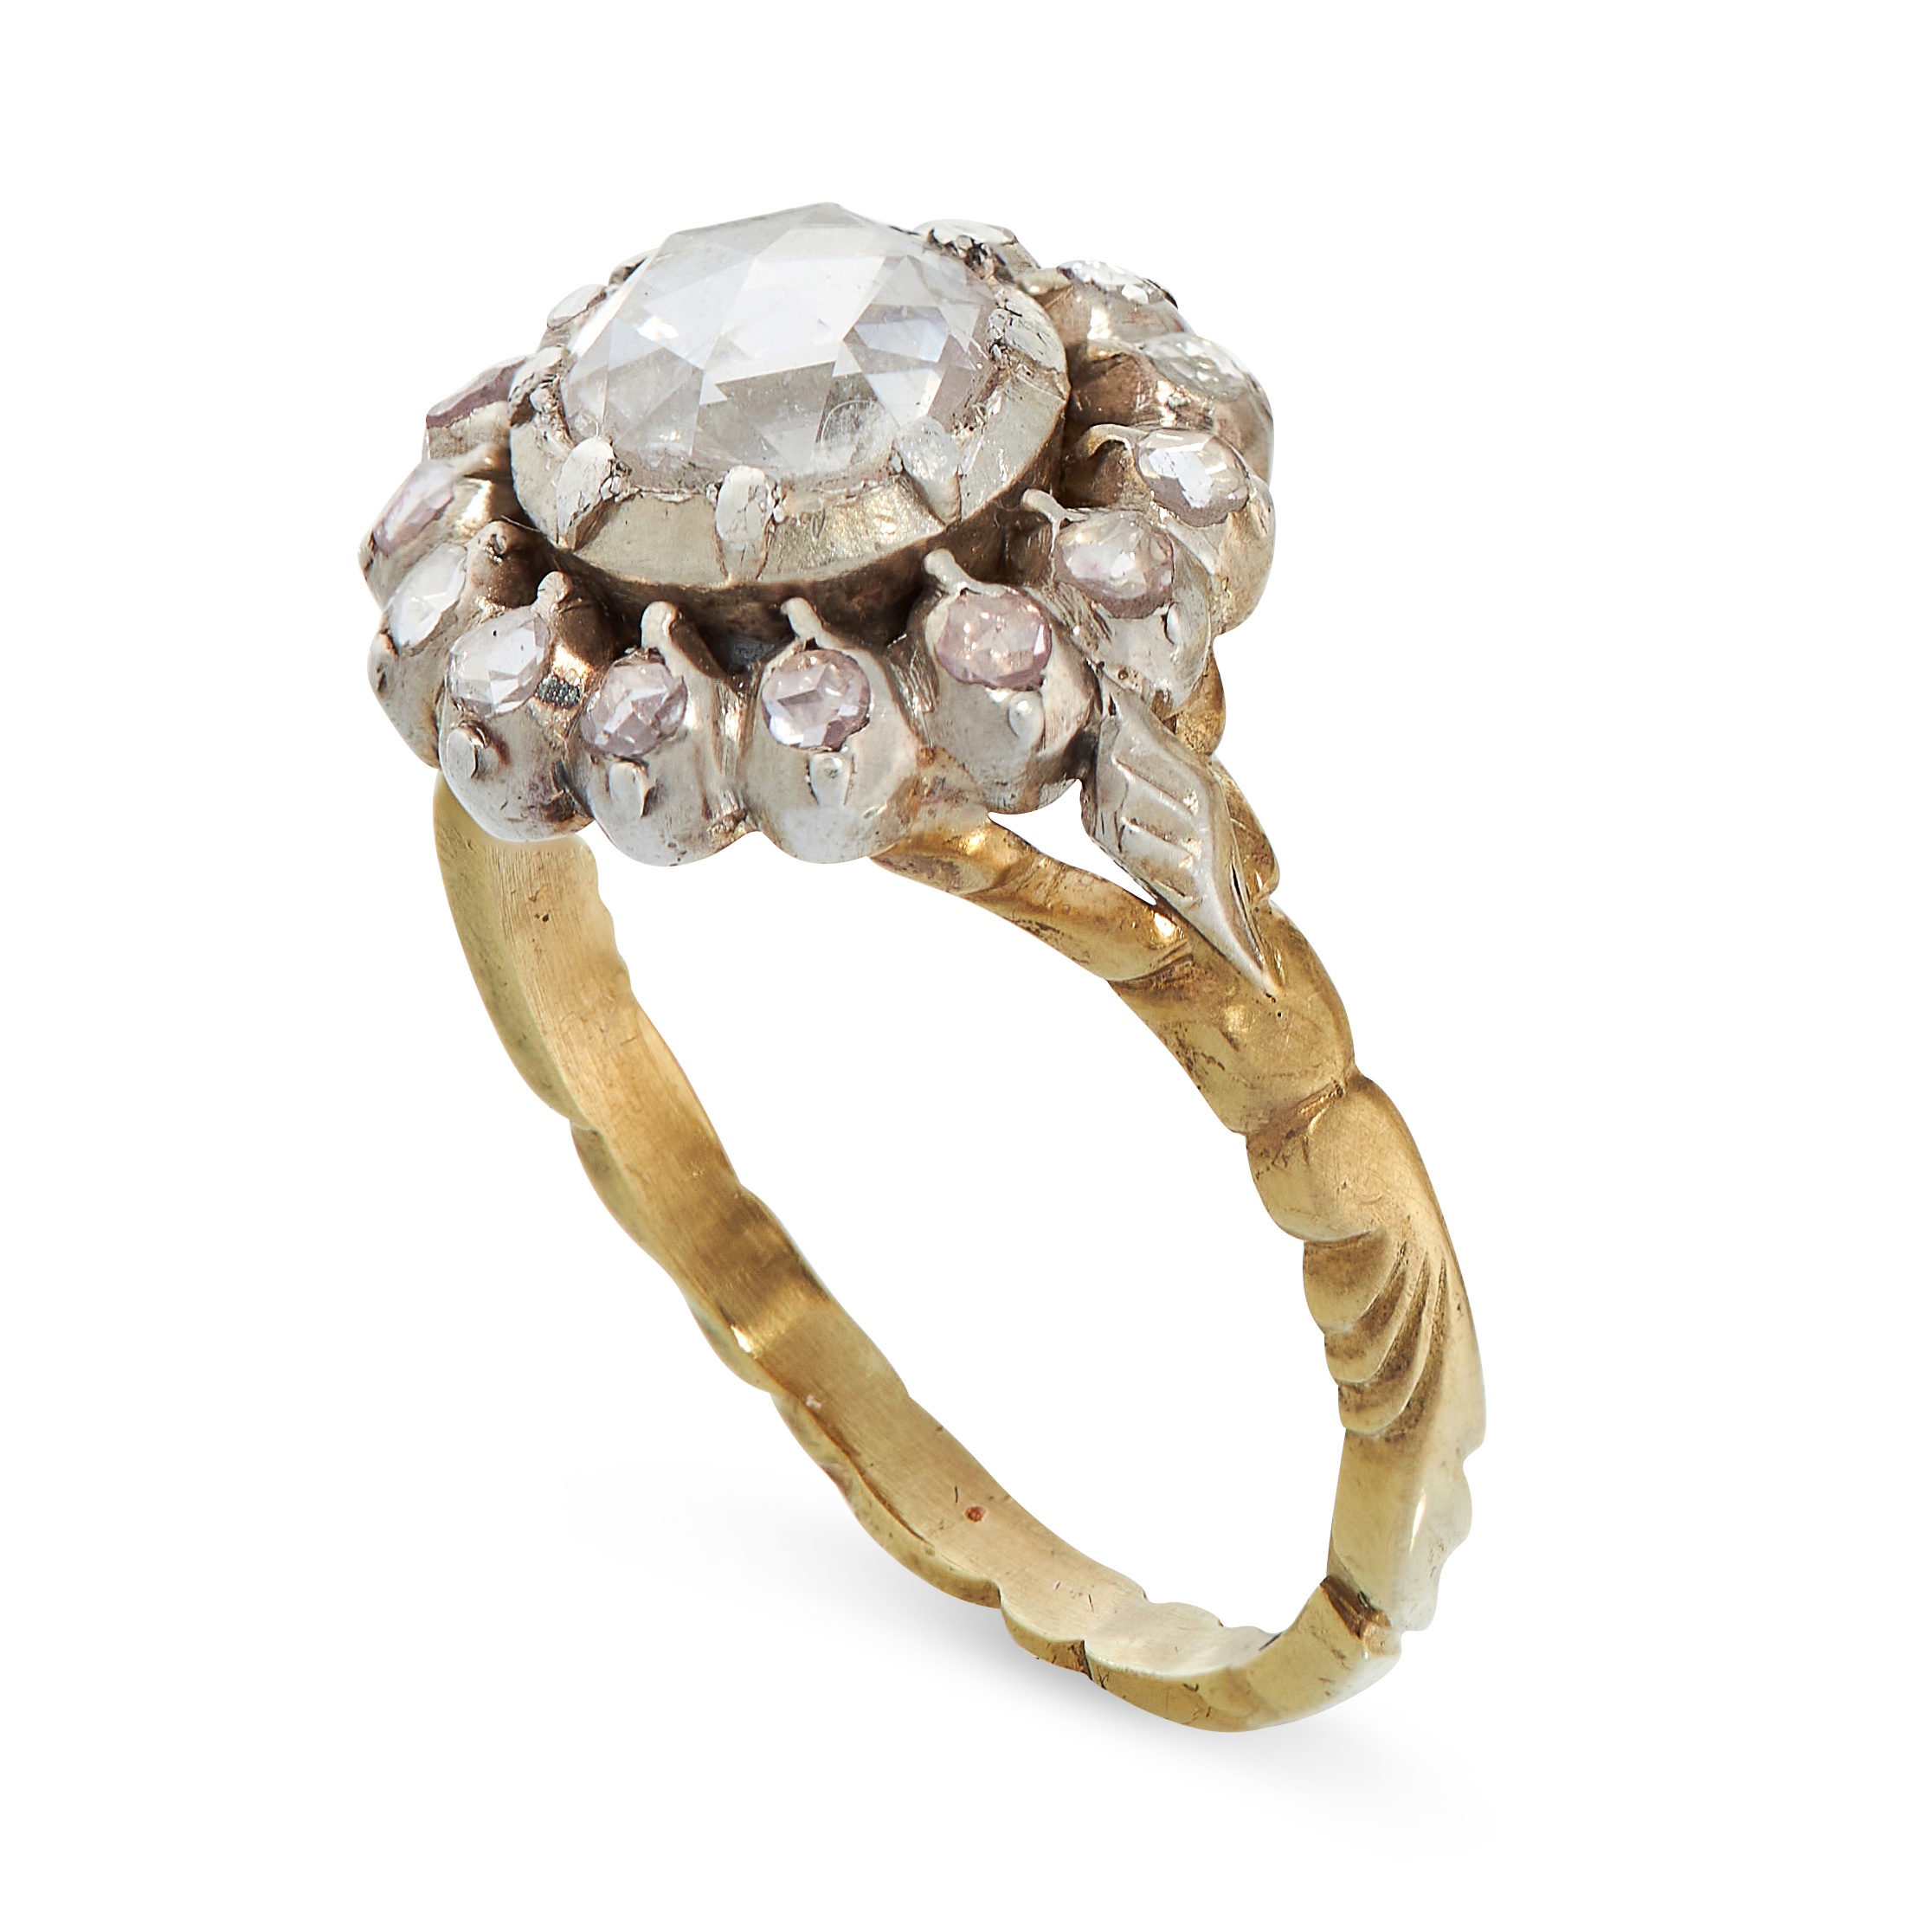 ANTIQUE GEORGIAN DIAMOND RING in yellow gold and silver, in cluster form, set with a central rose - Image 2 of 2